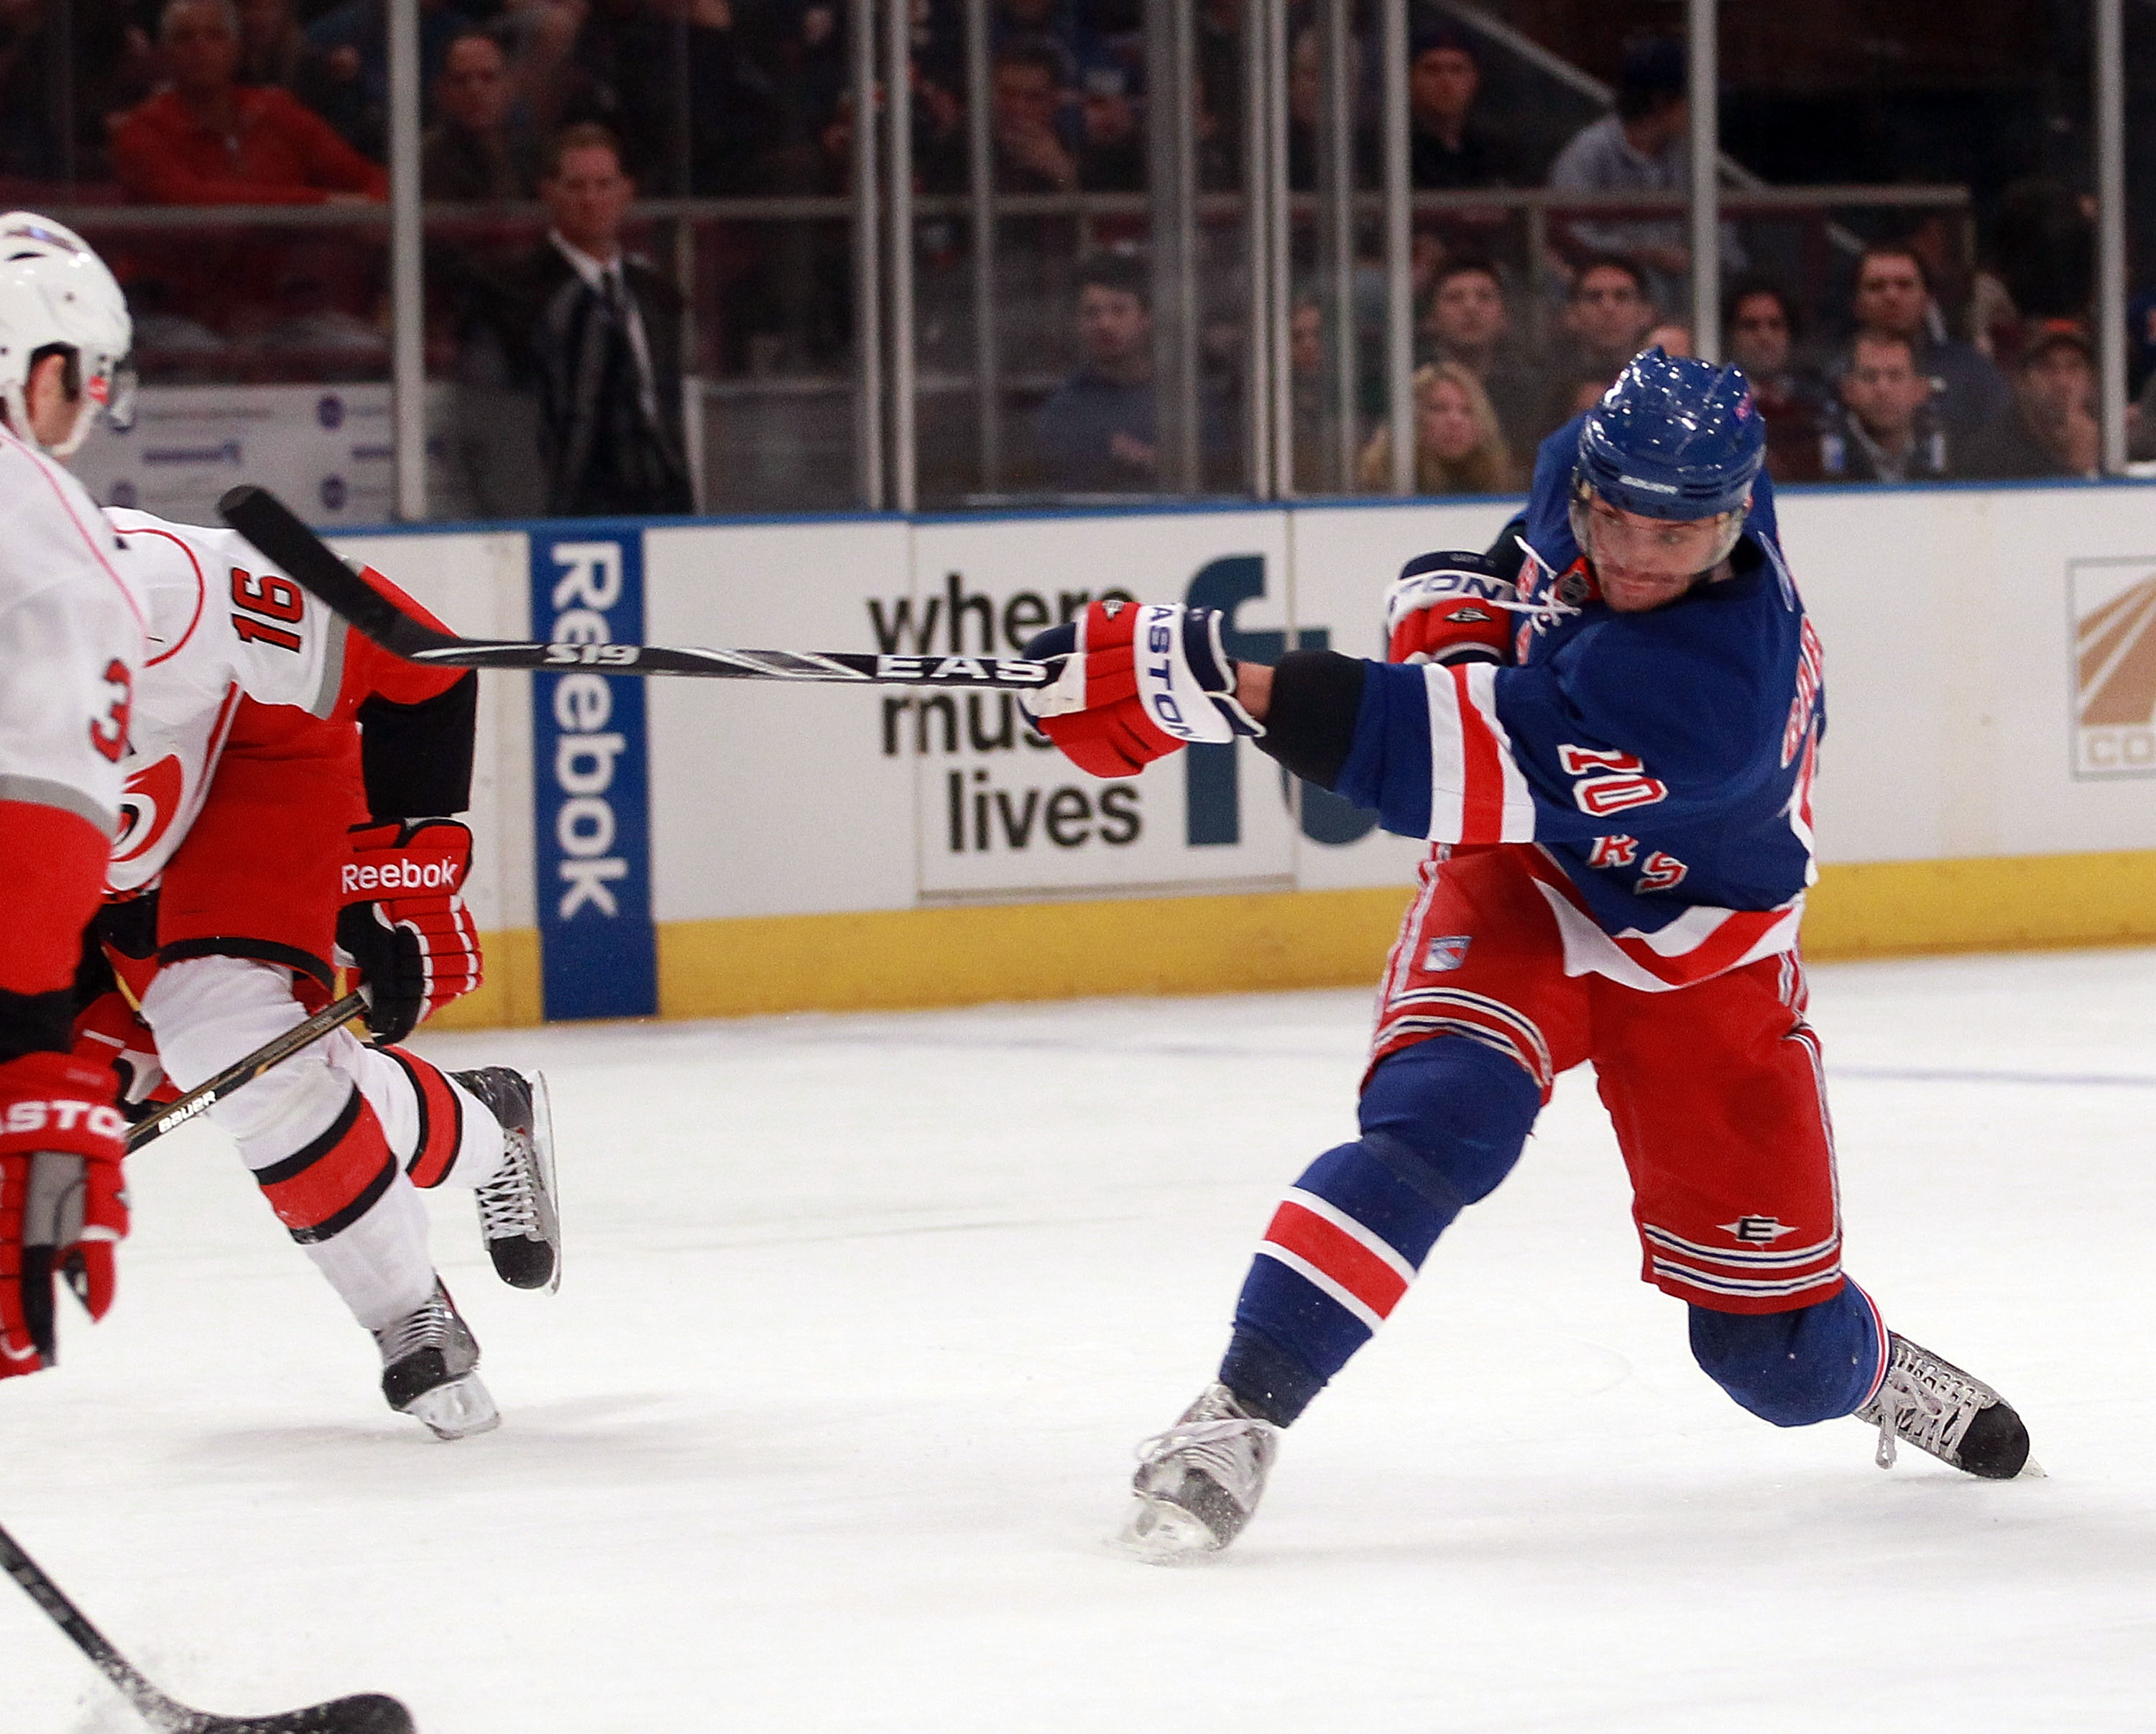 NEW YORK, NY - JANUARY 05: Marian Gaborik #10 of the New York Rangers skates against the Carolina Hurricanes at Madison Square Garden on January 5, 2011 in New York City. The Rangers defeated the Hurricanes 2-1 in overtime.  (Photo by Bruce Bennett/Getty